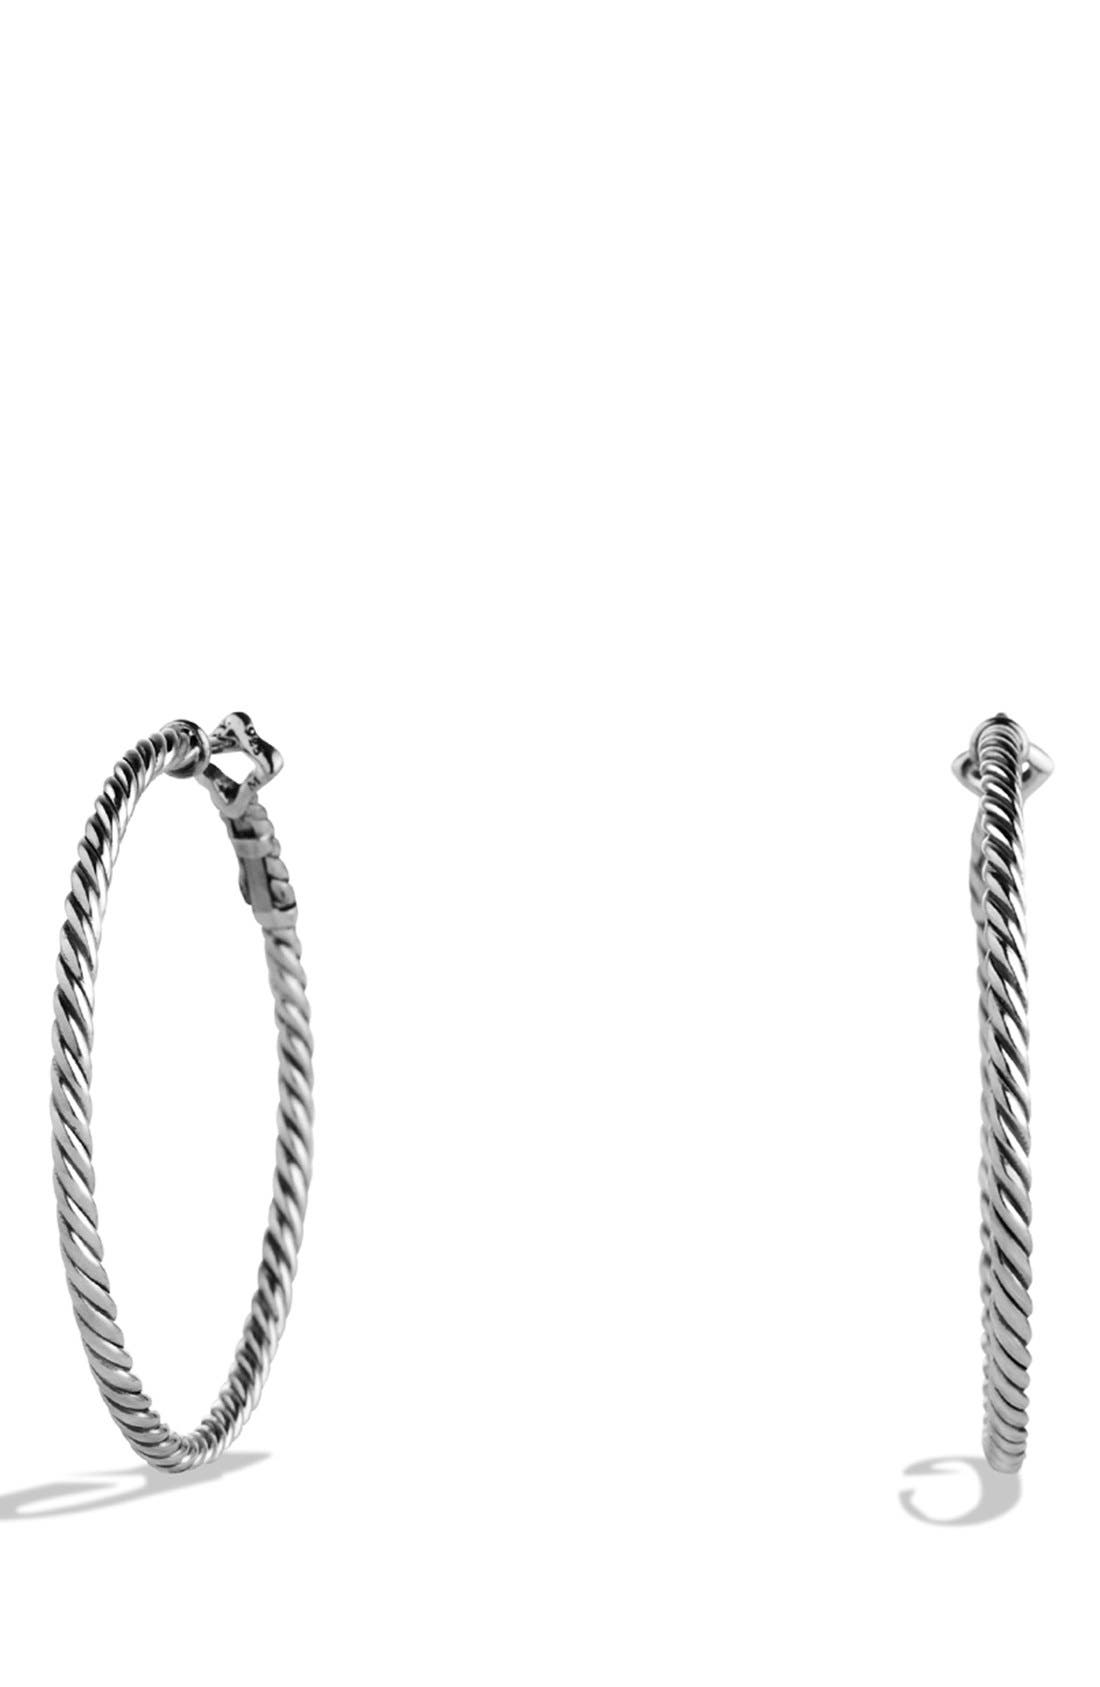 Cable Classics Hoop Earrings,                             Main thumbnail 1, color,                             SILVER